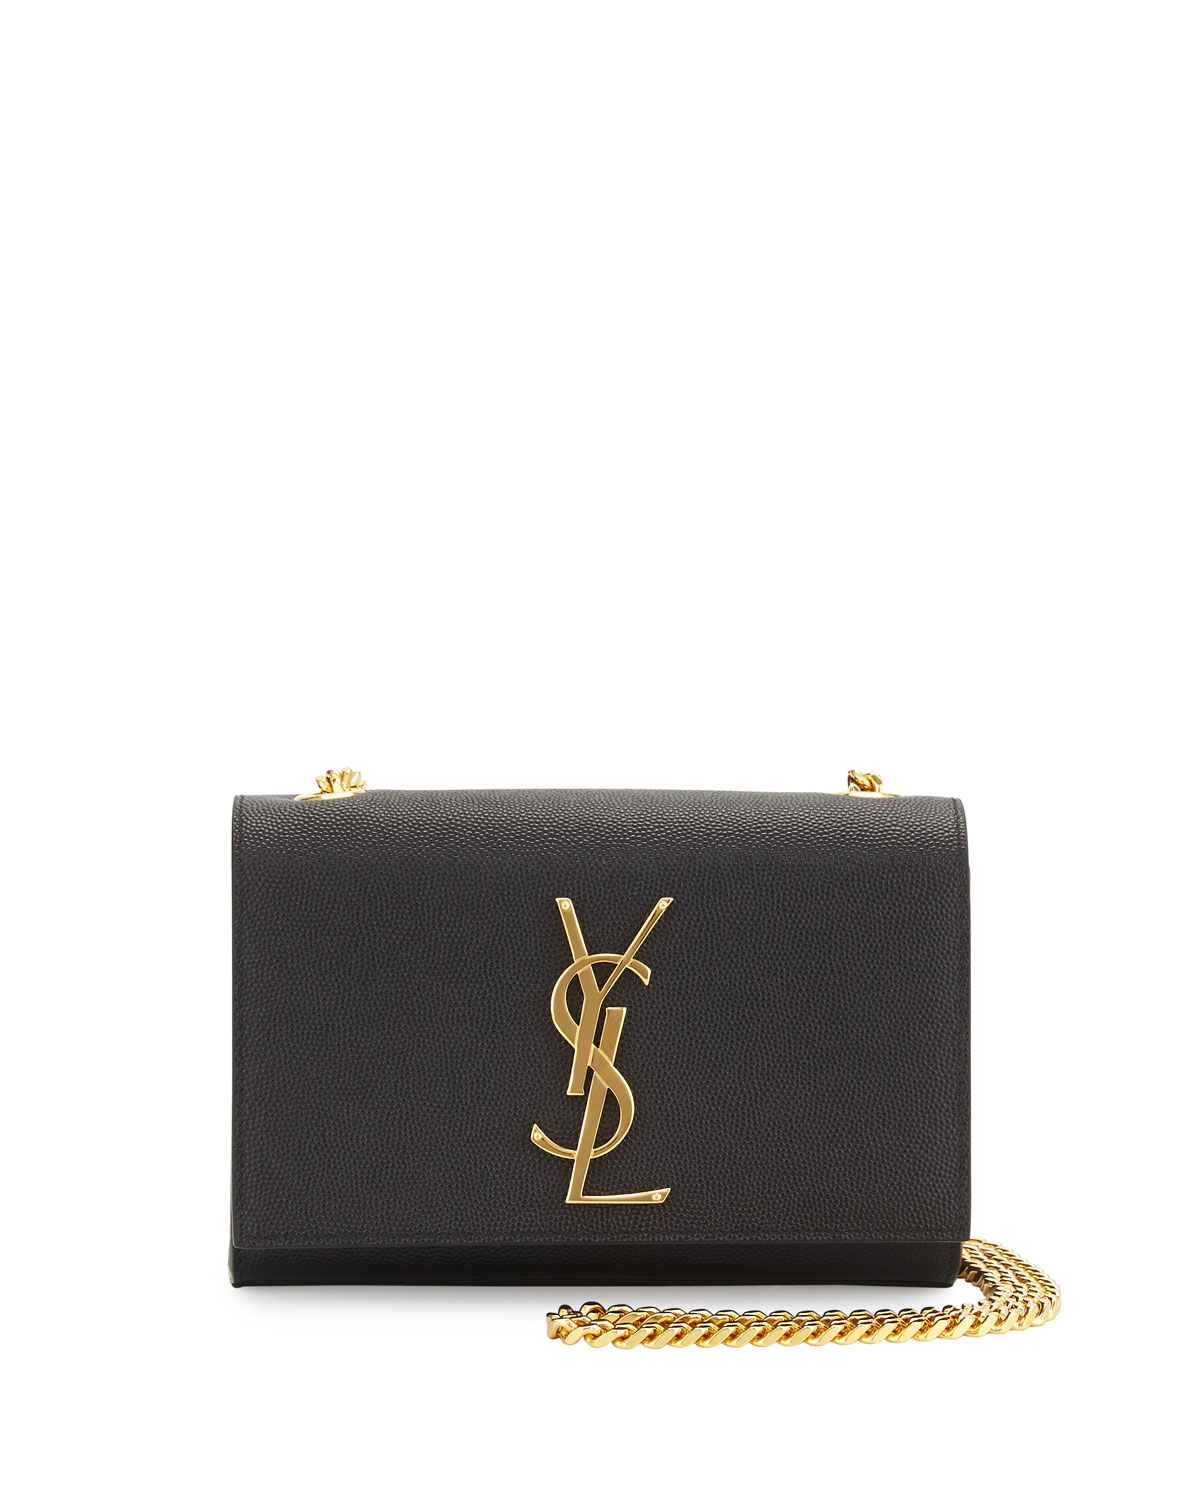 Saint Laurent Kate Monogram YSL Leather Crossbody Bag b8df0f8a31d01